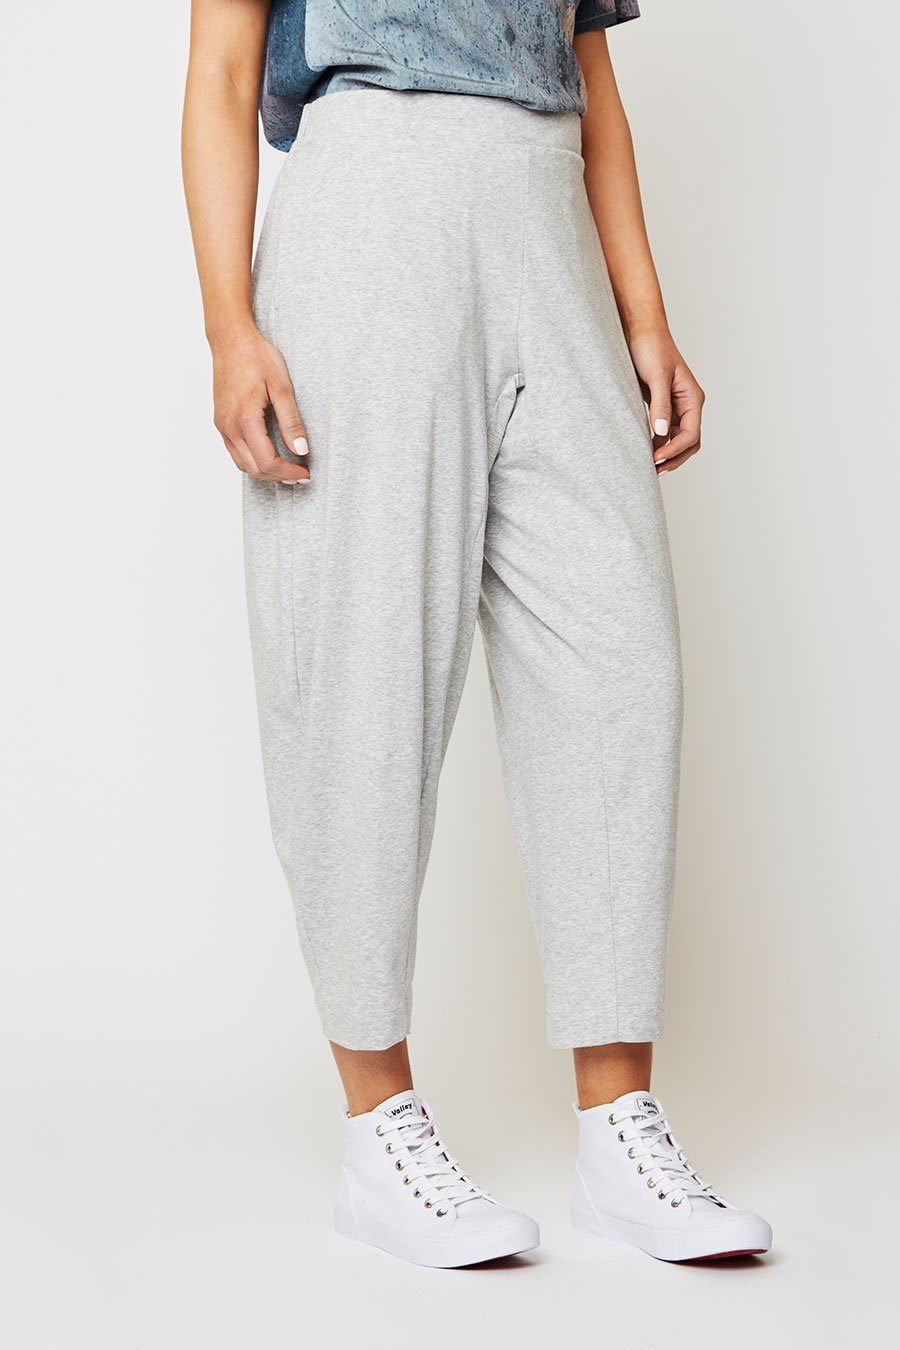 Grey Ghost  Knit Pant